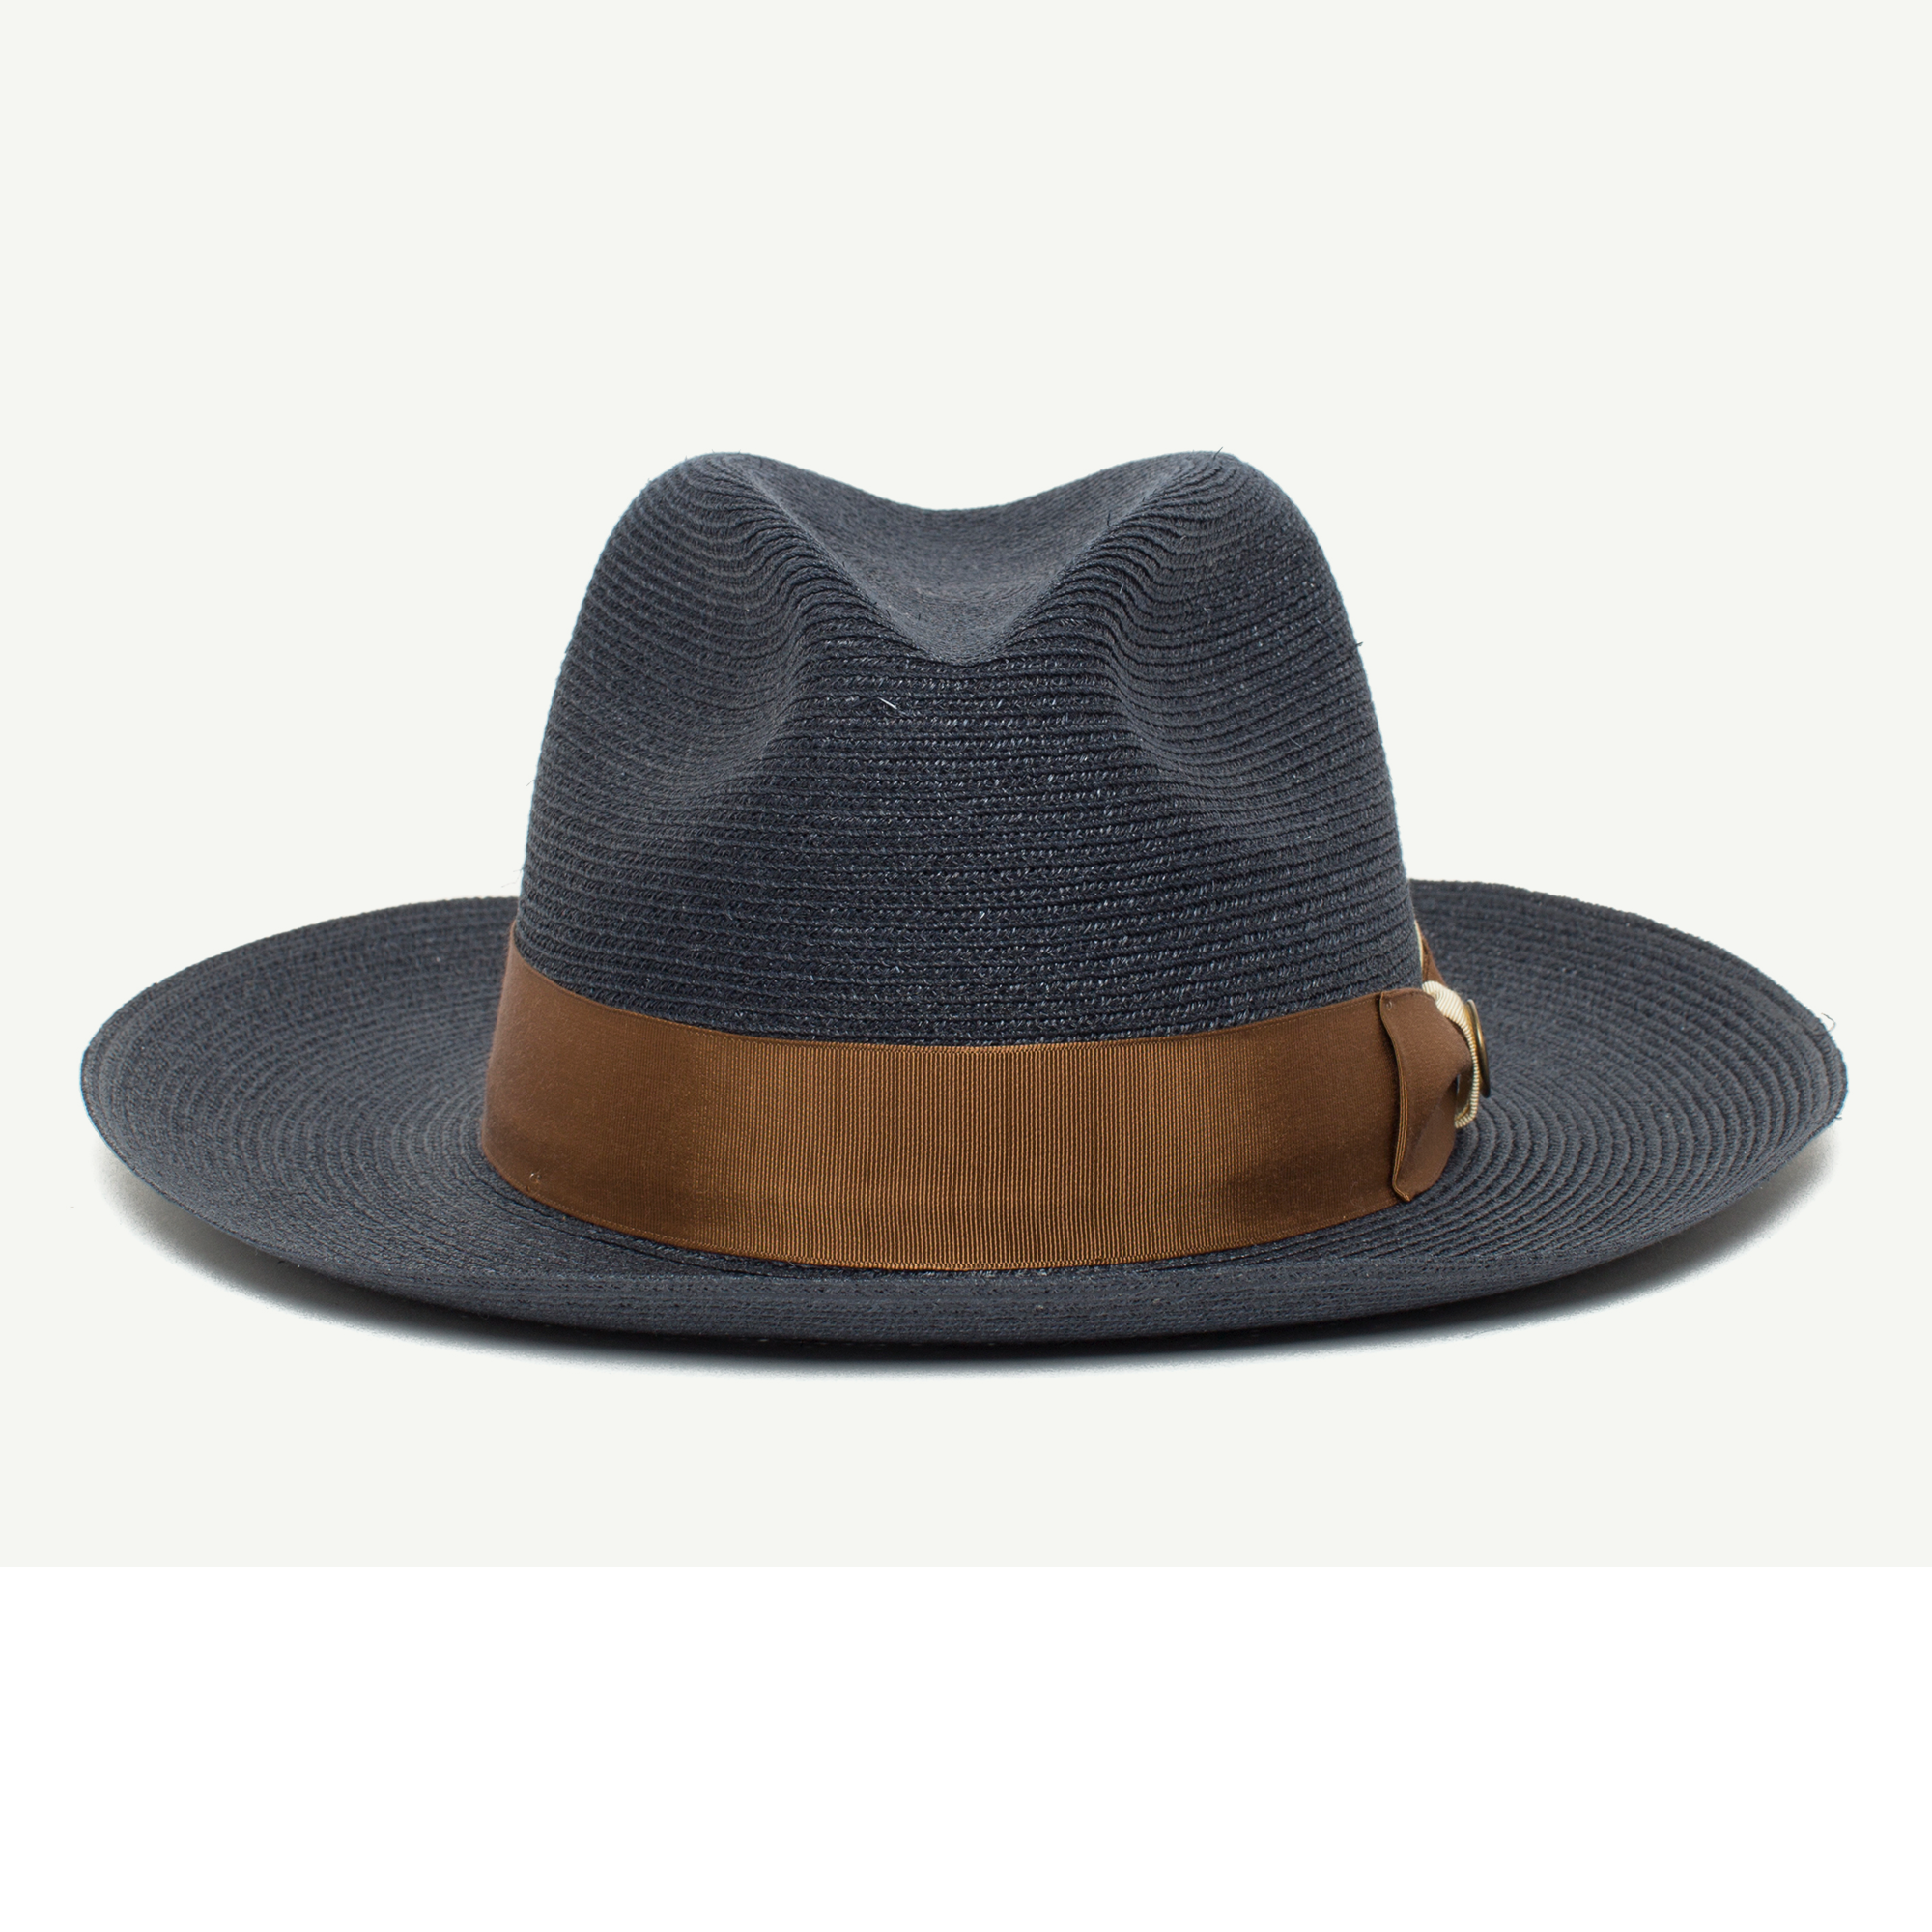 22e8e3109d4c76 Butch Jackson in 2019 | mens hats | Straw fedora, Fedora hat, Wide ...